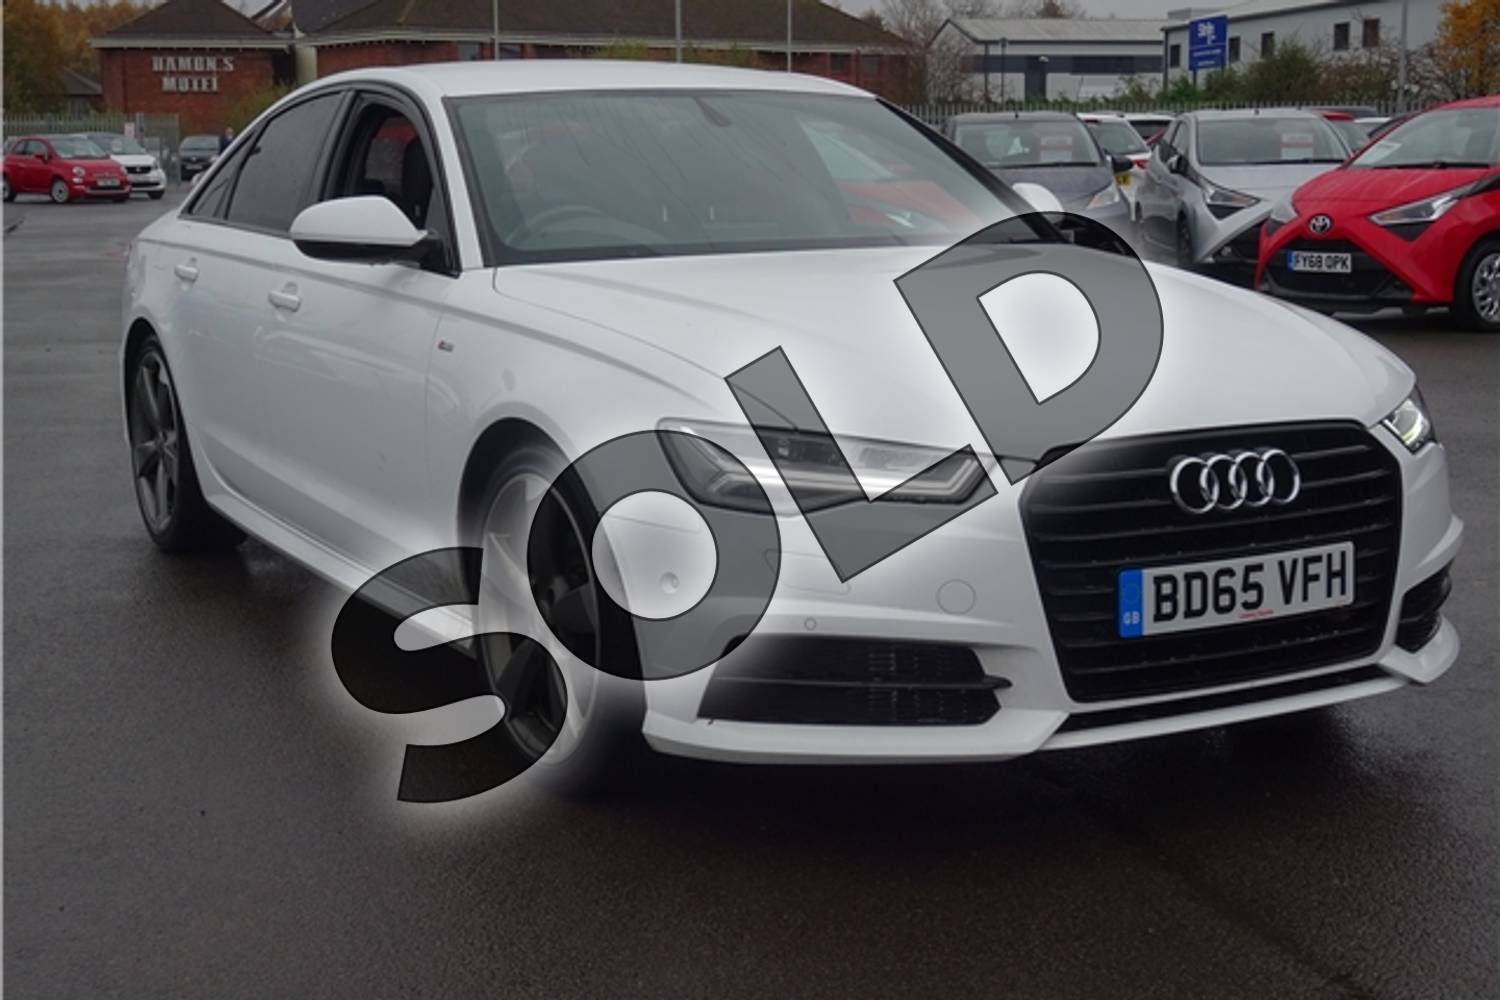 2015 Audi A6 Saloon Special Editions 2.0 TDI Ultra Black Edition 4dr in Solid - Ibis white at Listers Toyota Lincoln